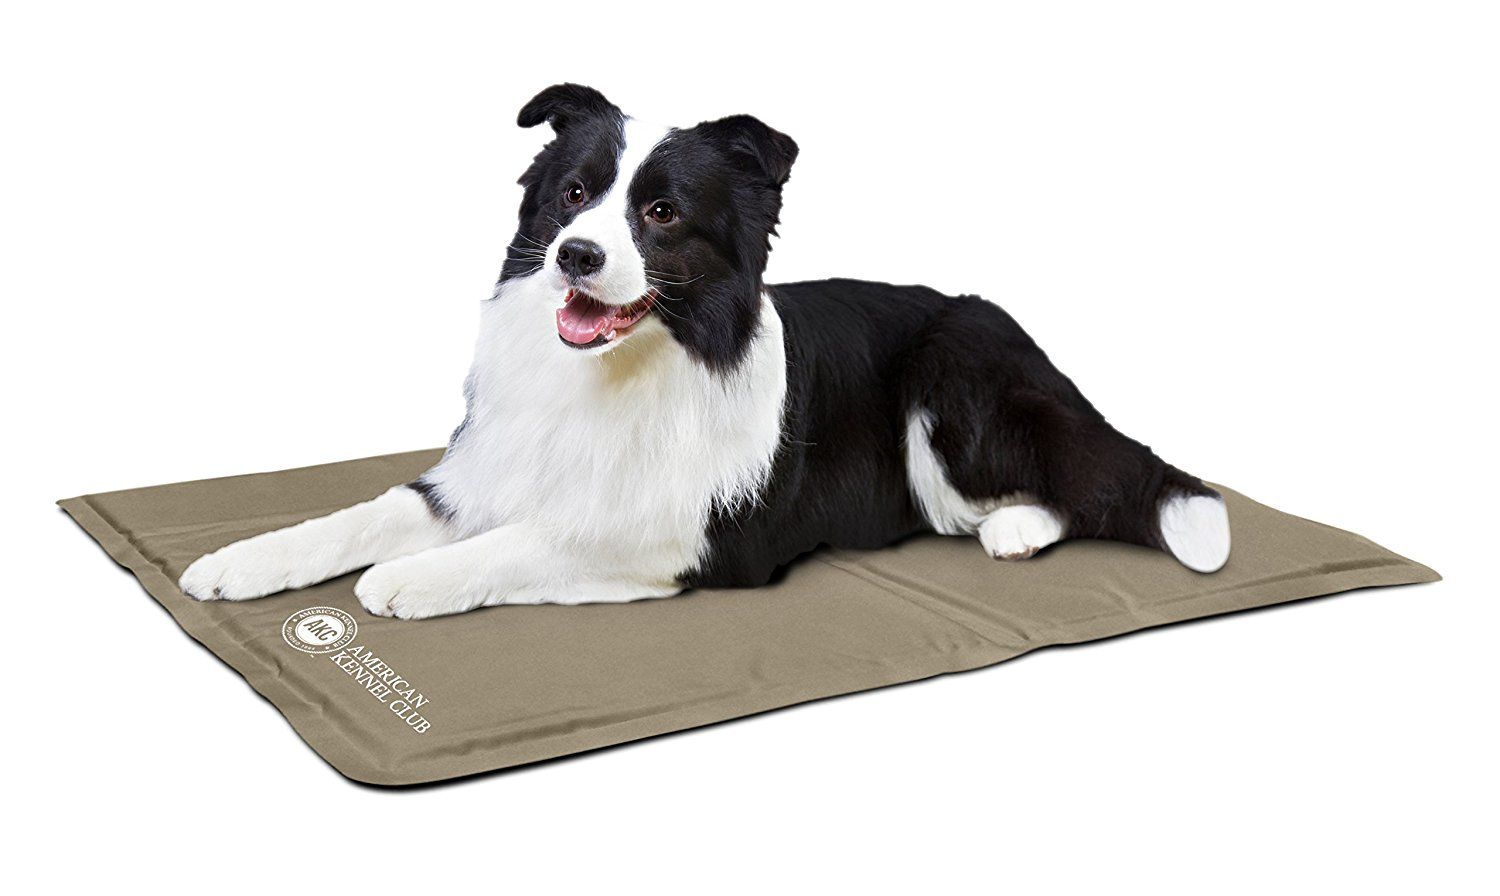 Akc pet cooling mat learn more by visiting the image